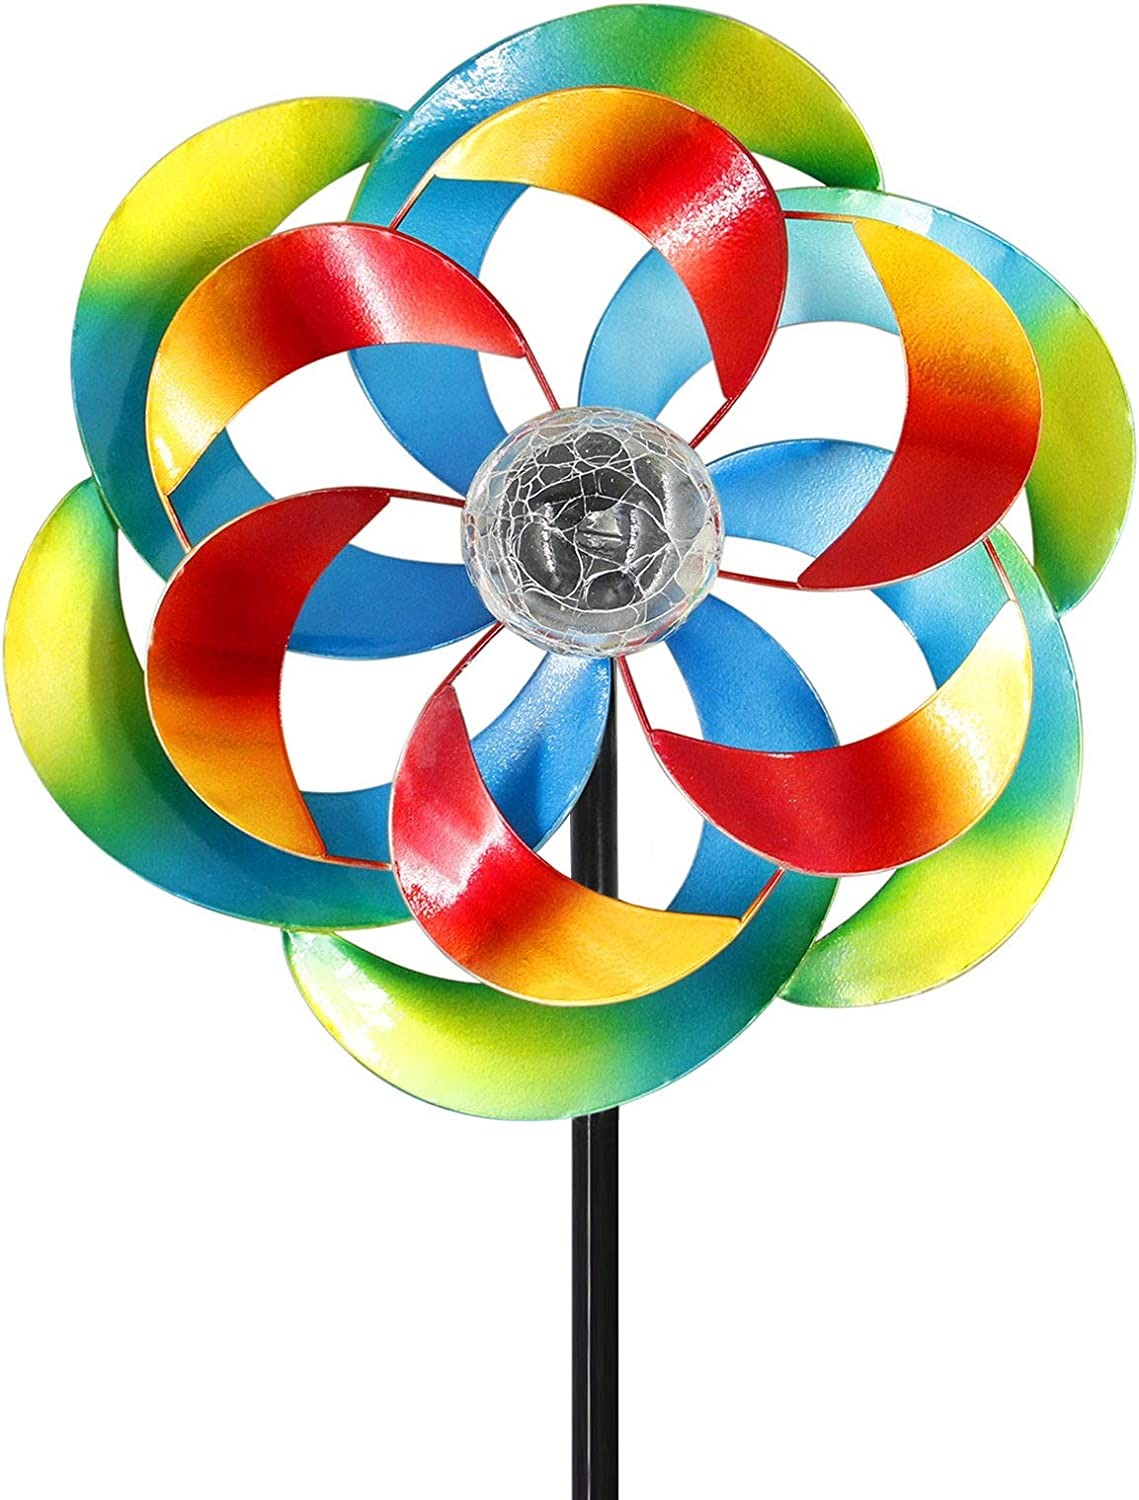 MAGGIFT Solar Wind Spinner, 57 Inches Outdoor Metal Stake Yard Spinners, Garden Wind Catcher Wind Mills, Solar Powered Multi-Colour Changing LED with Glass Ball, Lawn Yard Patio Decoration